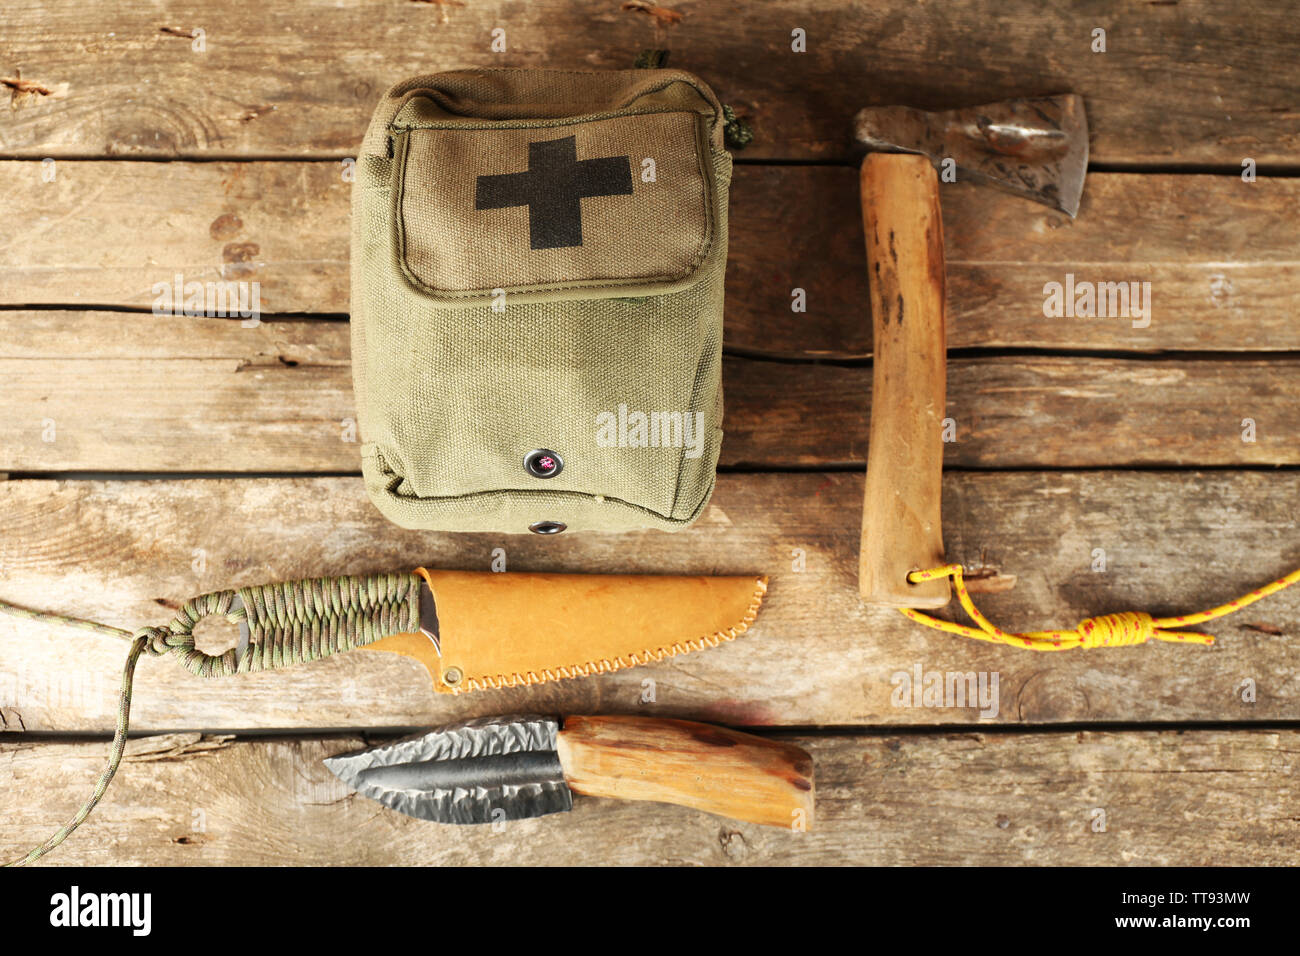 Hiking gear on wooden background - Stock Image